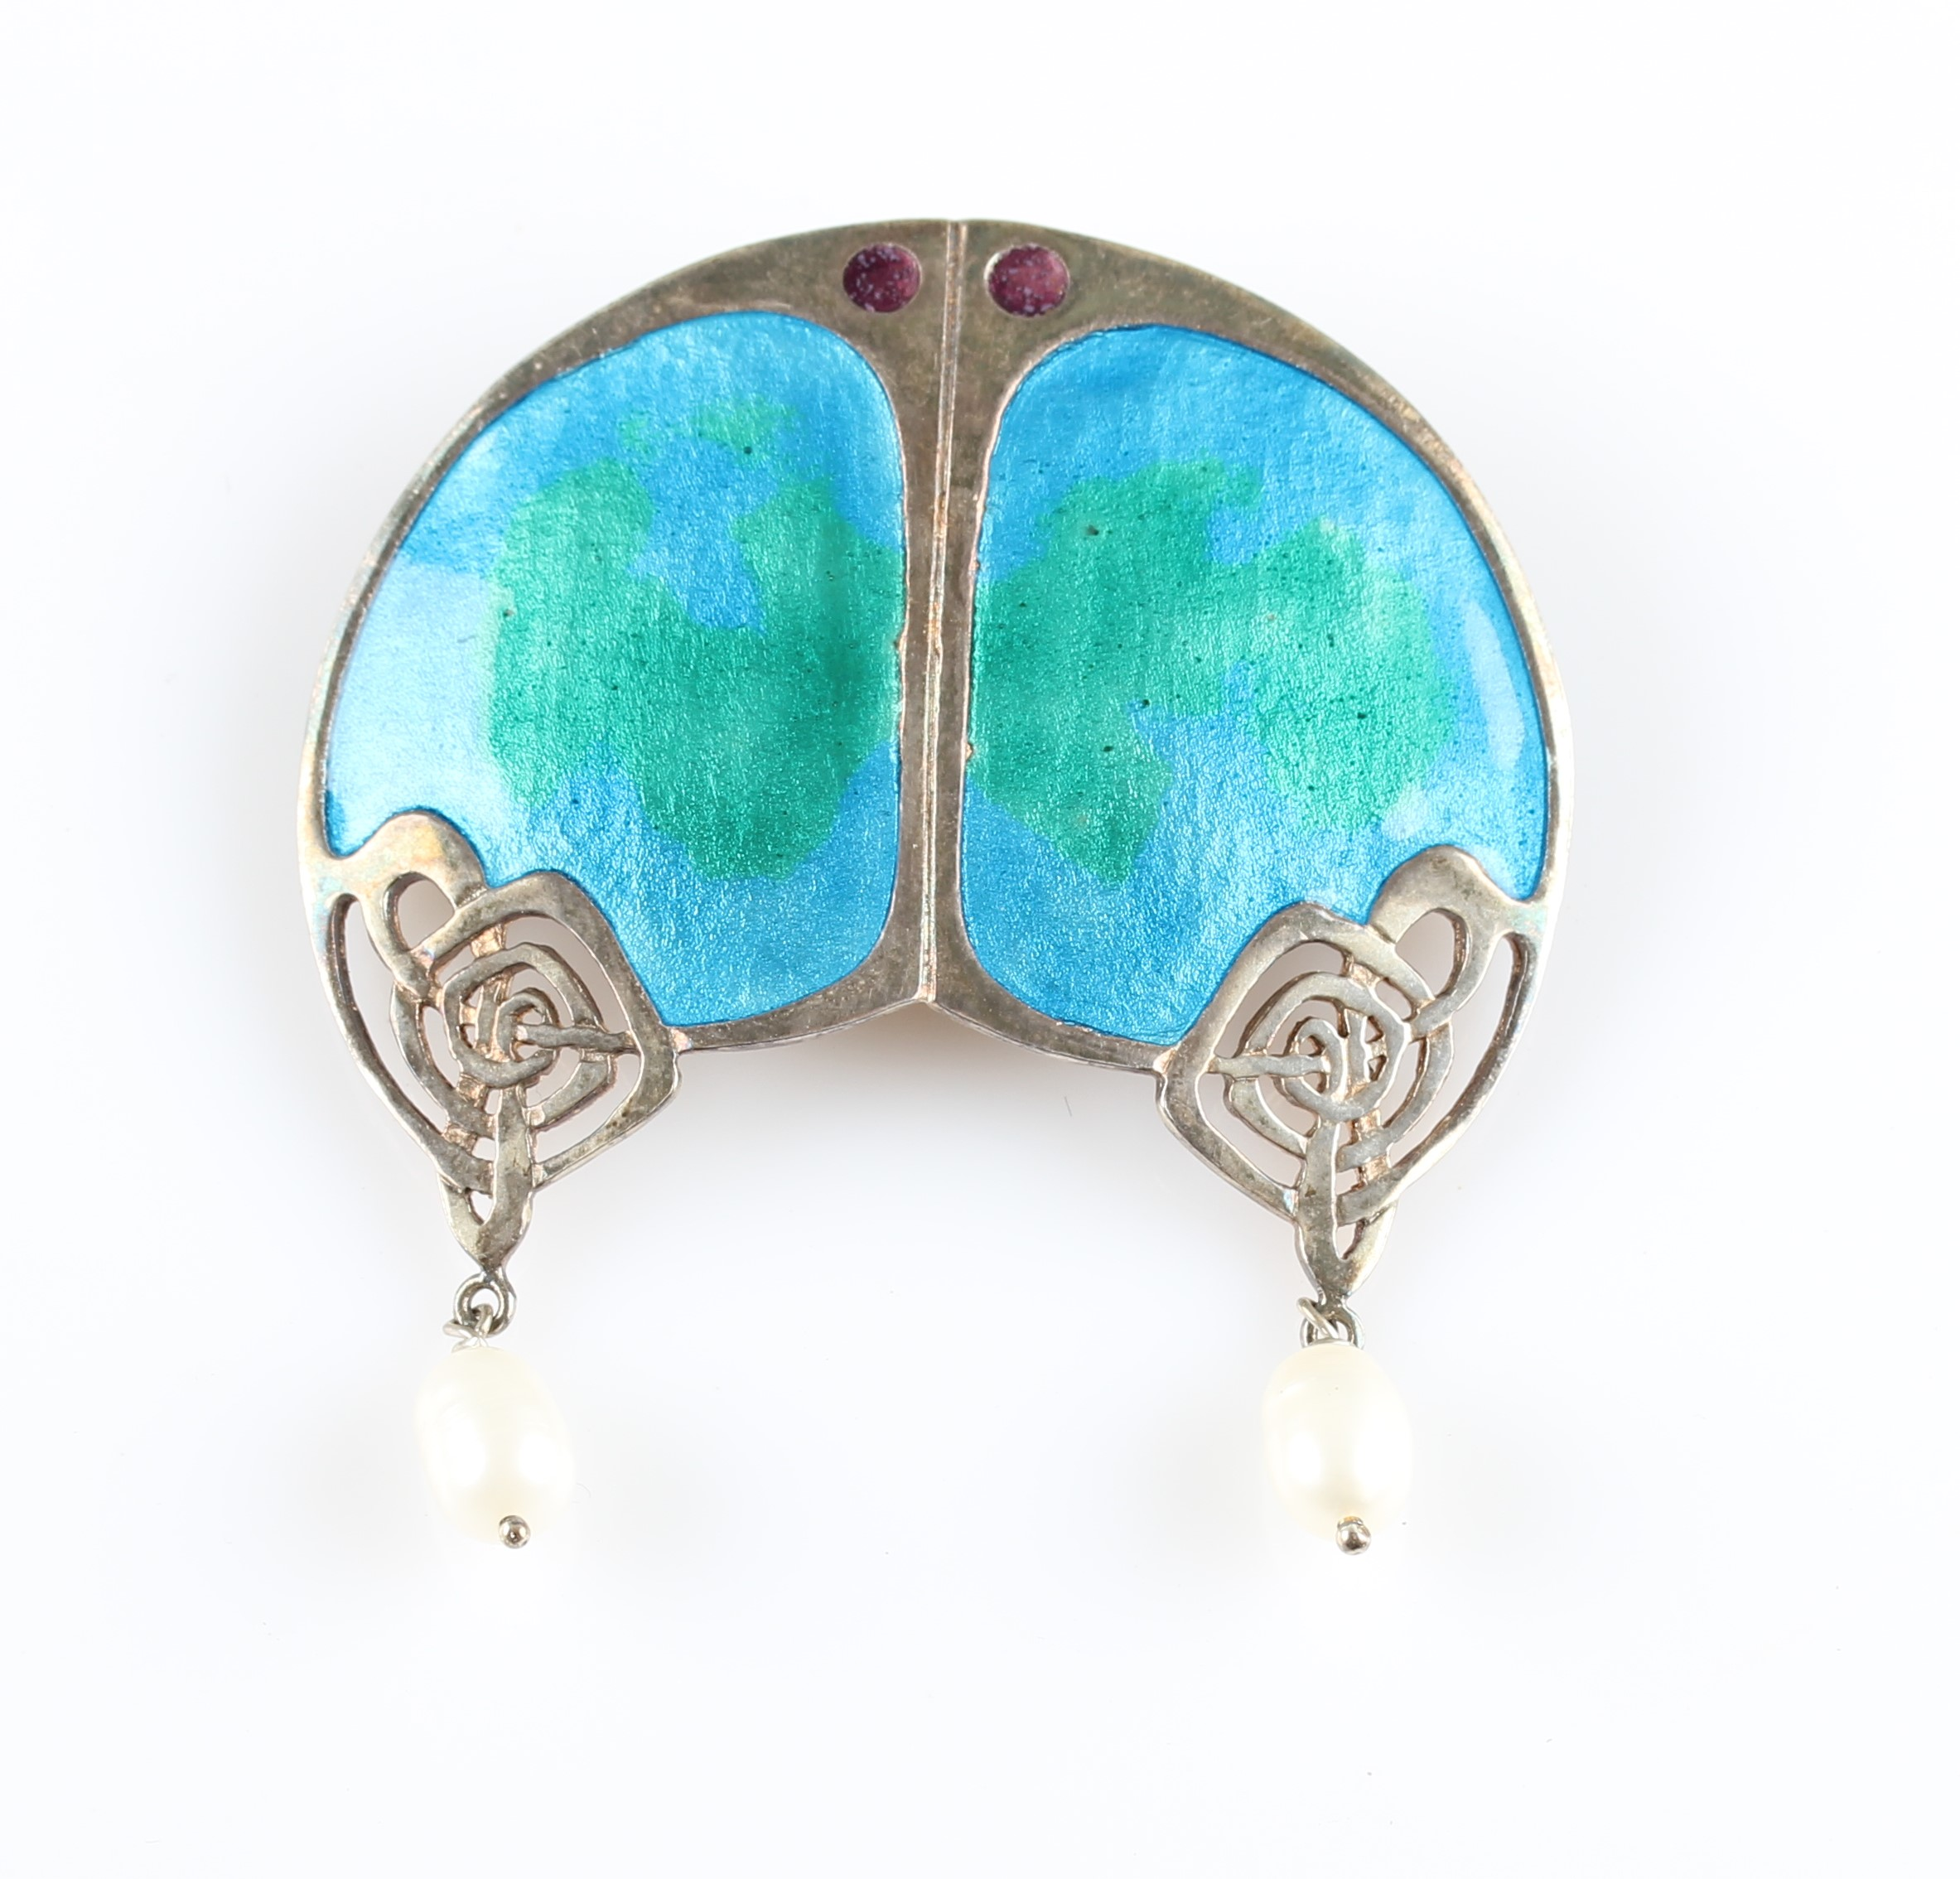 Lot 2 - A Liberty & Co. silver, enamel and freshwater pearl brooch, having blue to green enamel panels